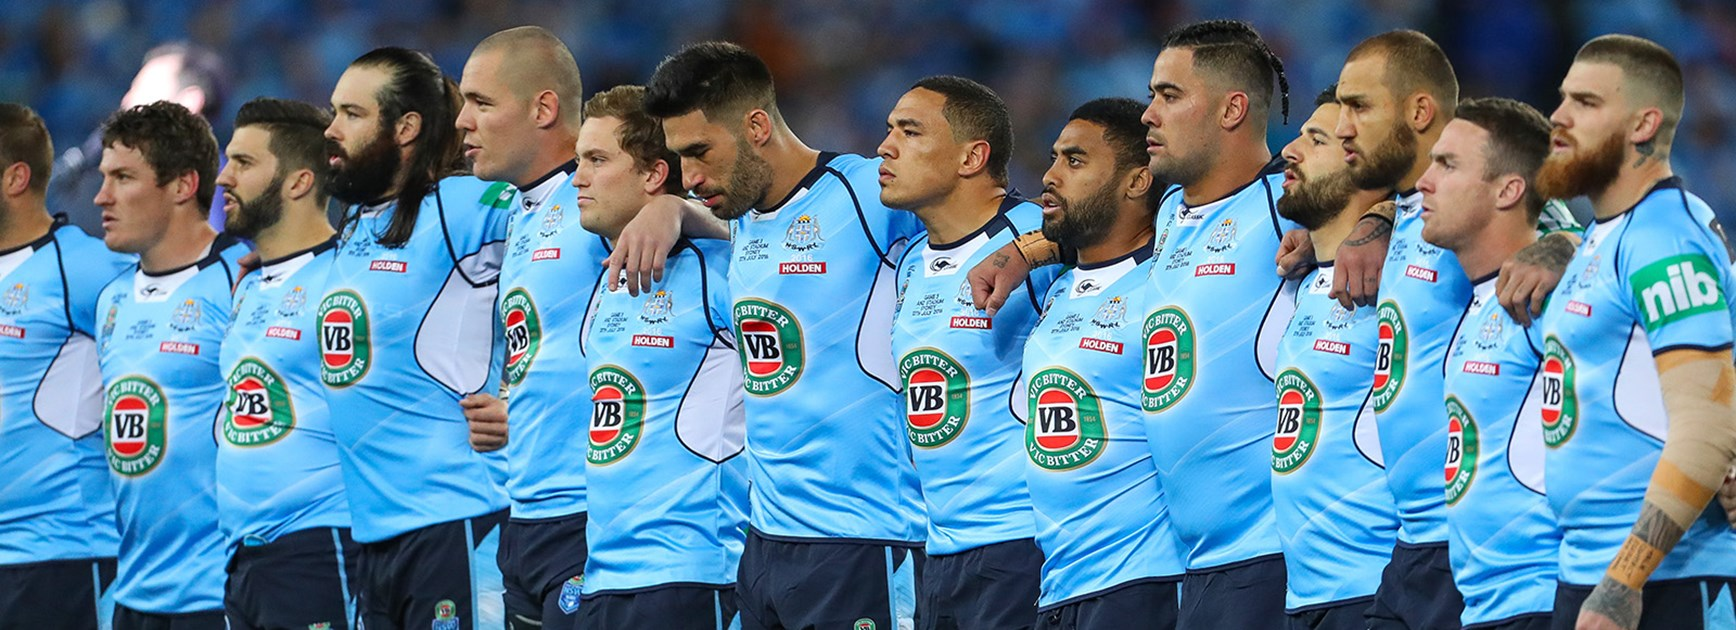 NSW players before Game Three of State of Origin.